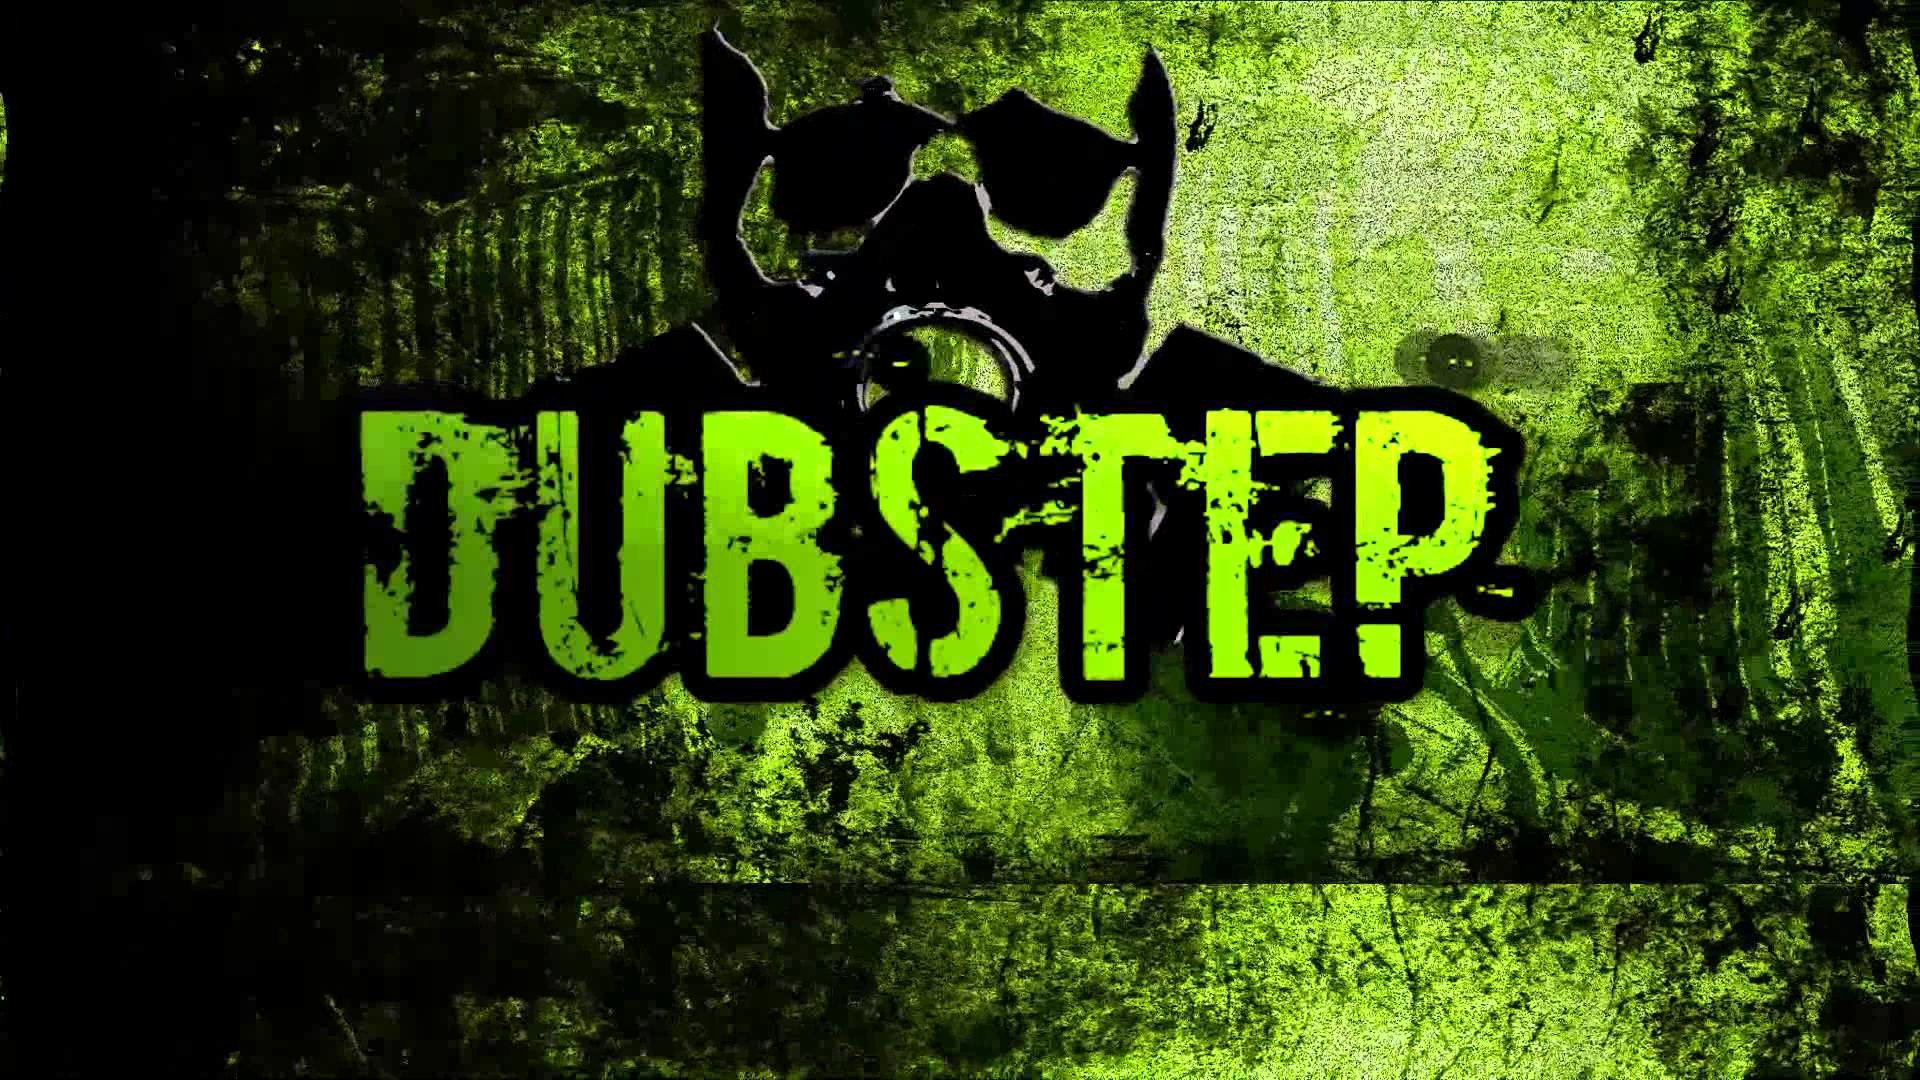 1920x1080 Dubstep Gas Mask Wallpaper - WallpaperSafari